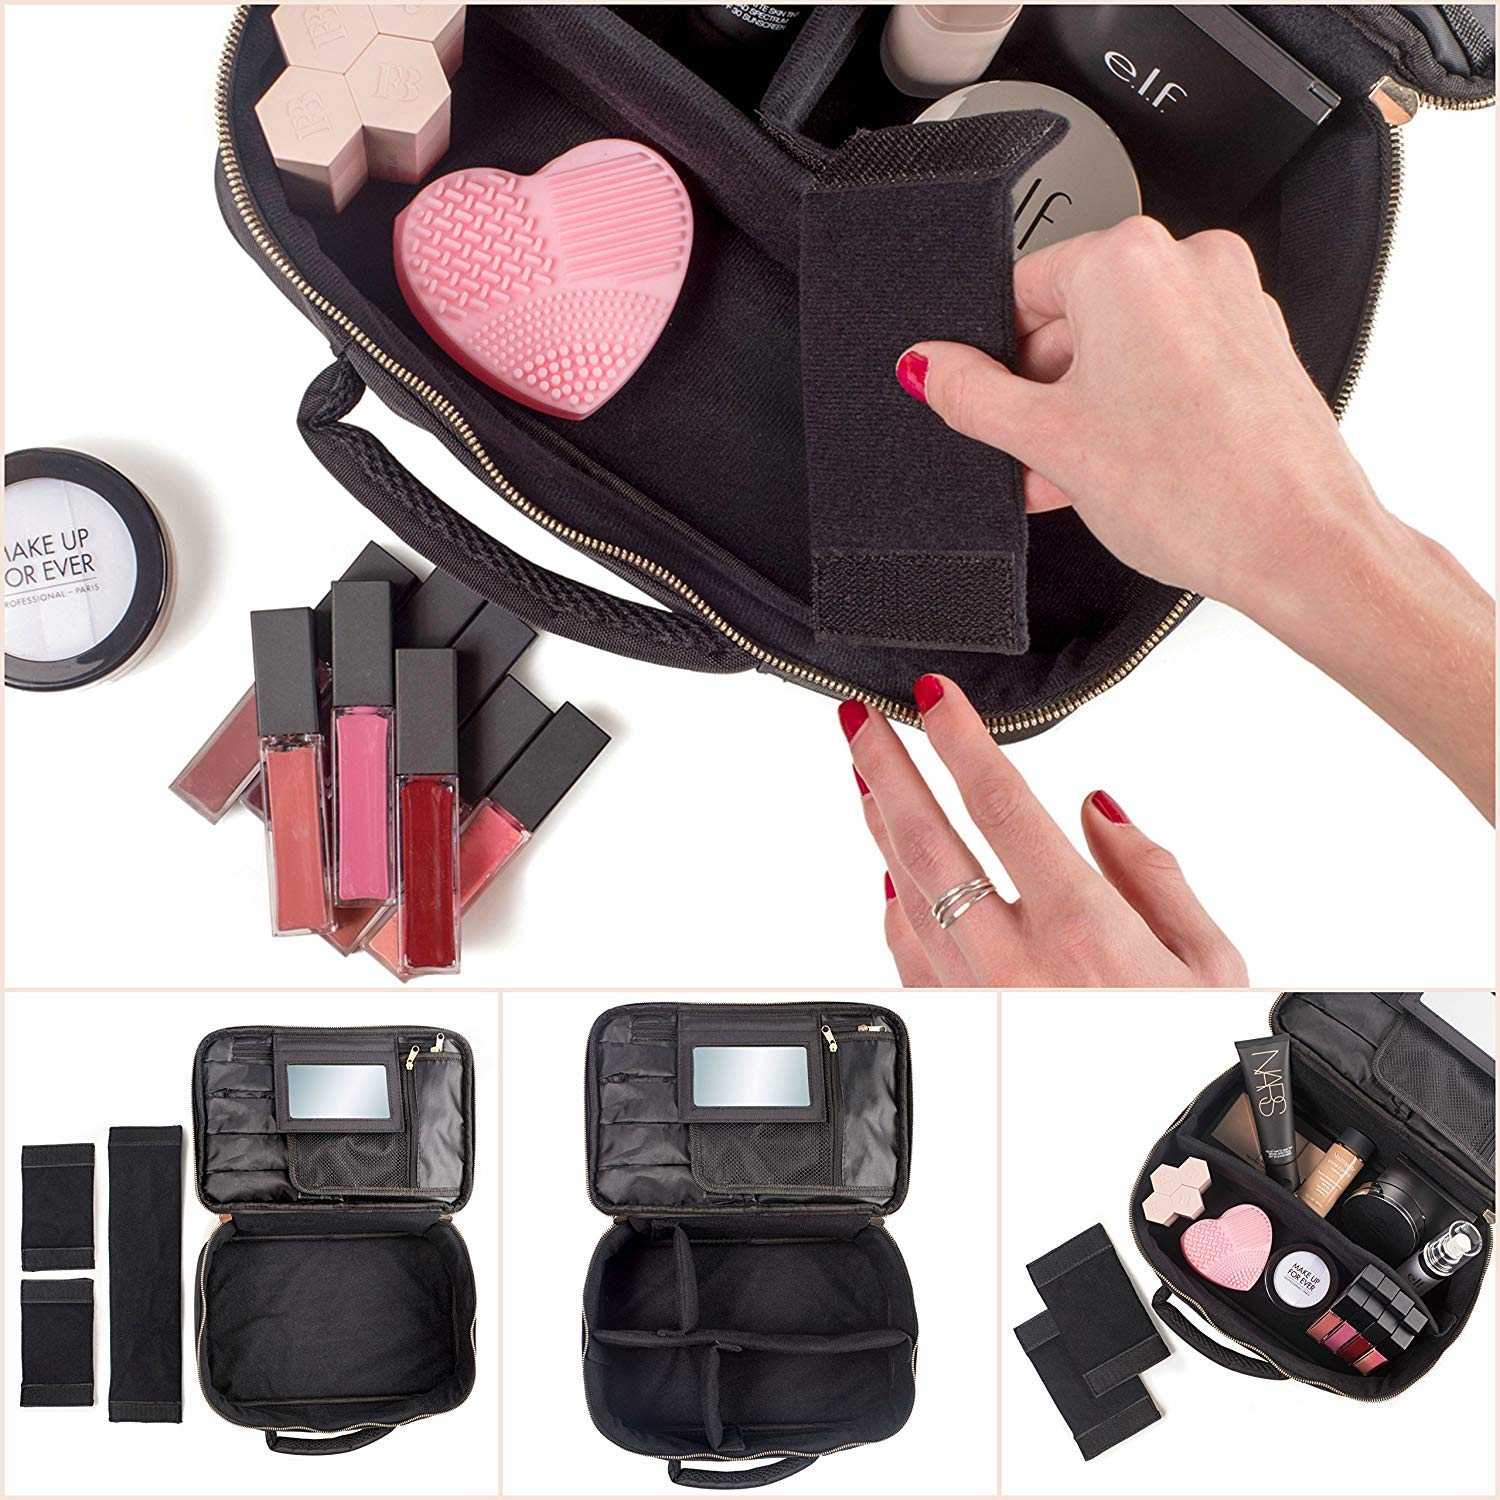 habe Travel Makeup Bag with Mirror - Organize Your Makeup! Make Up Bag Organizer Train Case for Women - Storage Capacity of 3 Cosmetic Bags/Make Up Bags/Make Up Cases (BONUS Make-Up Brush Cleaner) by häbe (Image #3)